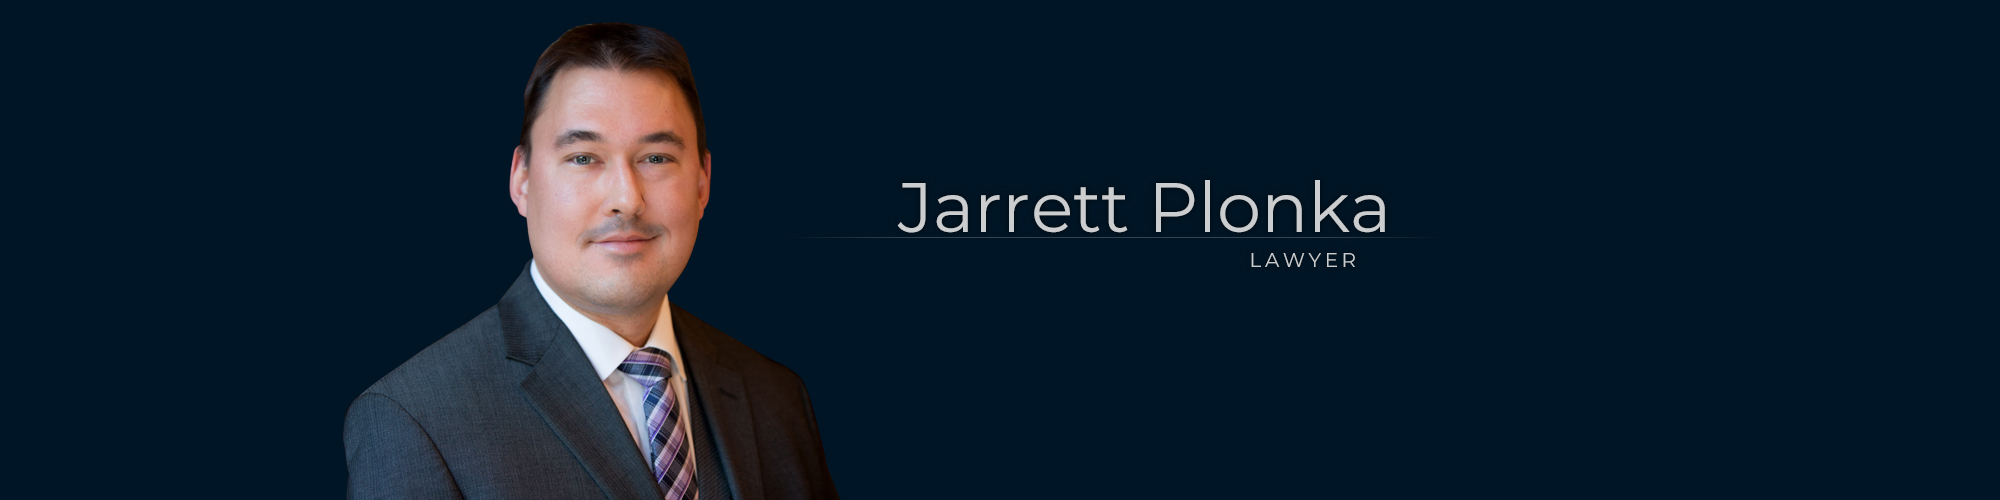 Jarrett Plonka – Senior Associate Lawyer at Dominion GovLaw LLP